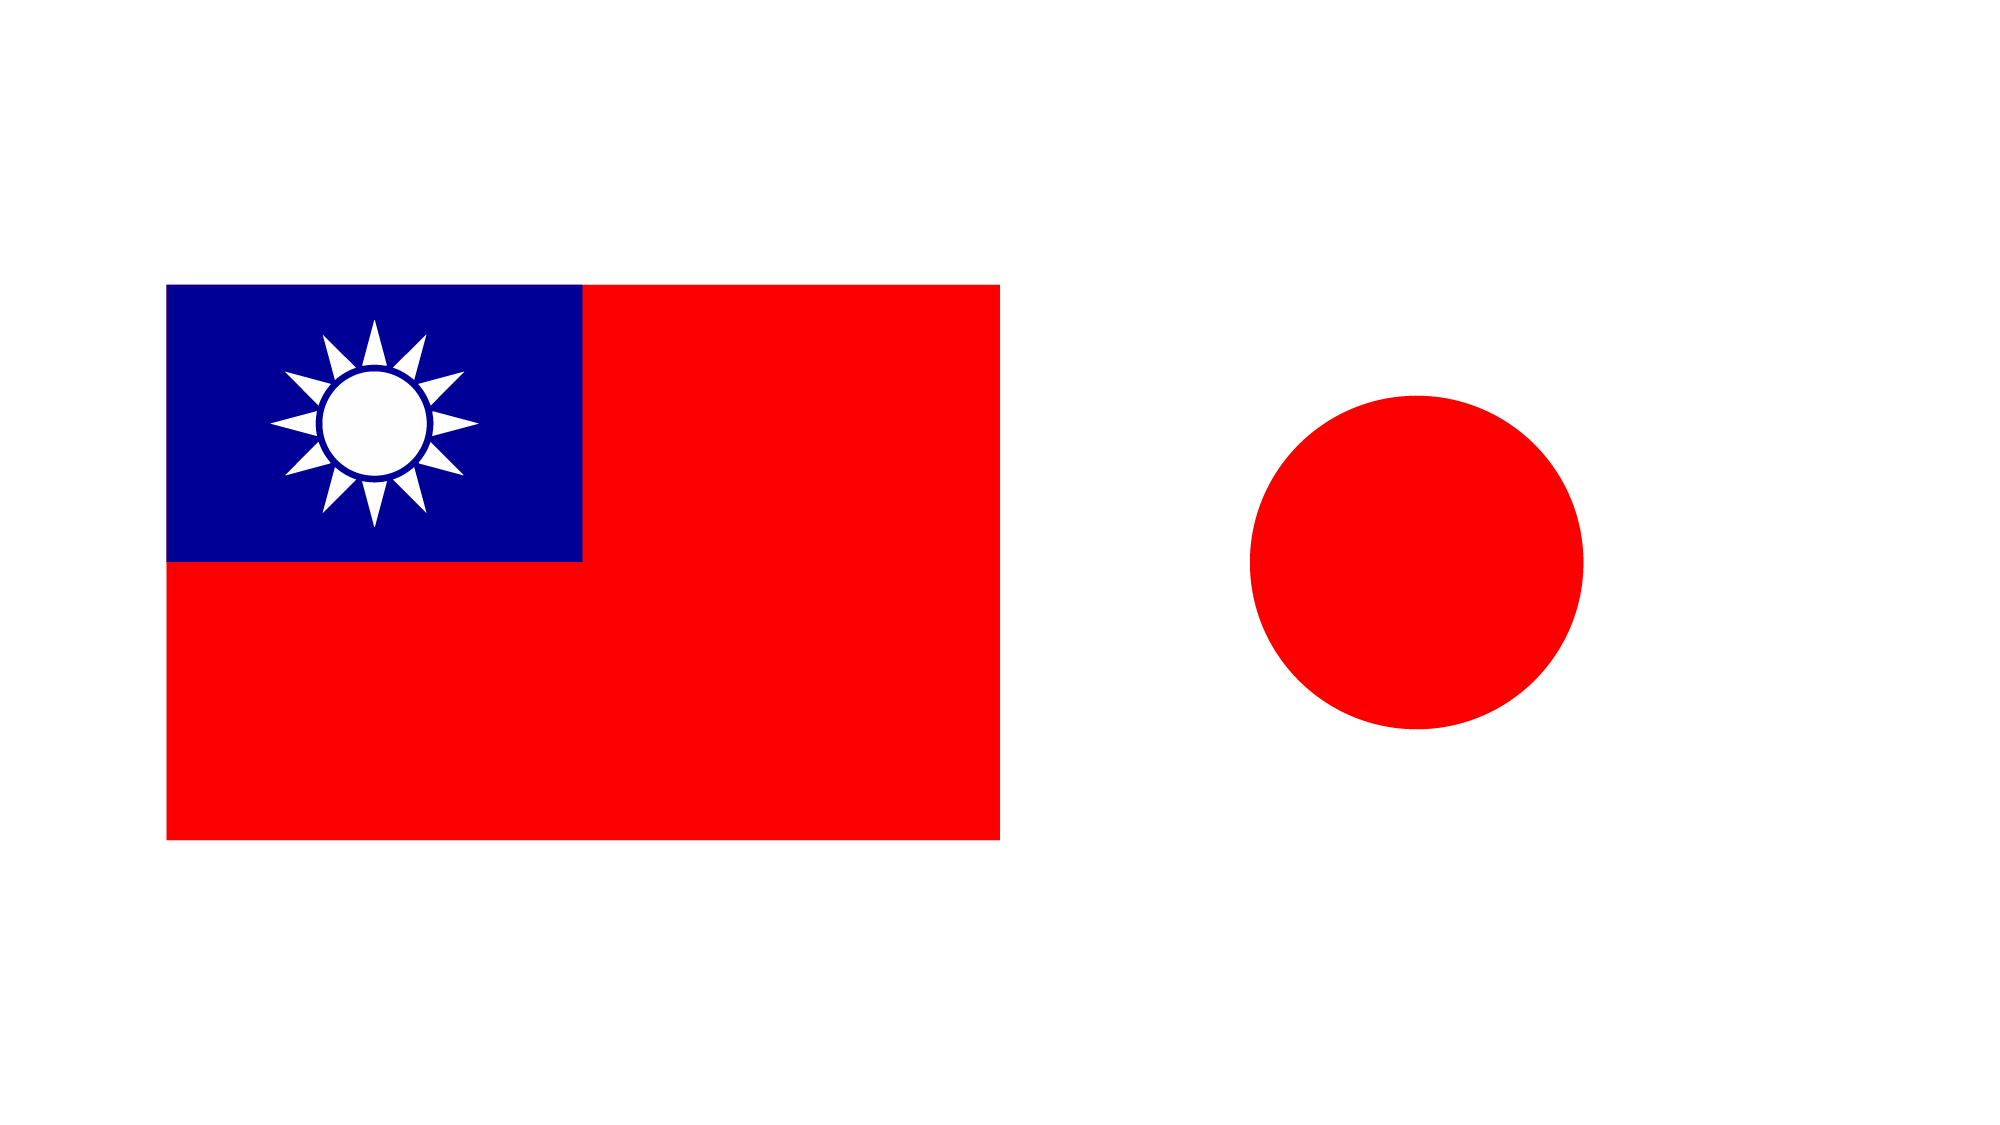 Flag of Republic of China and Japan